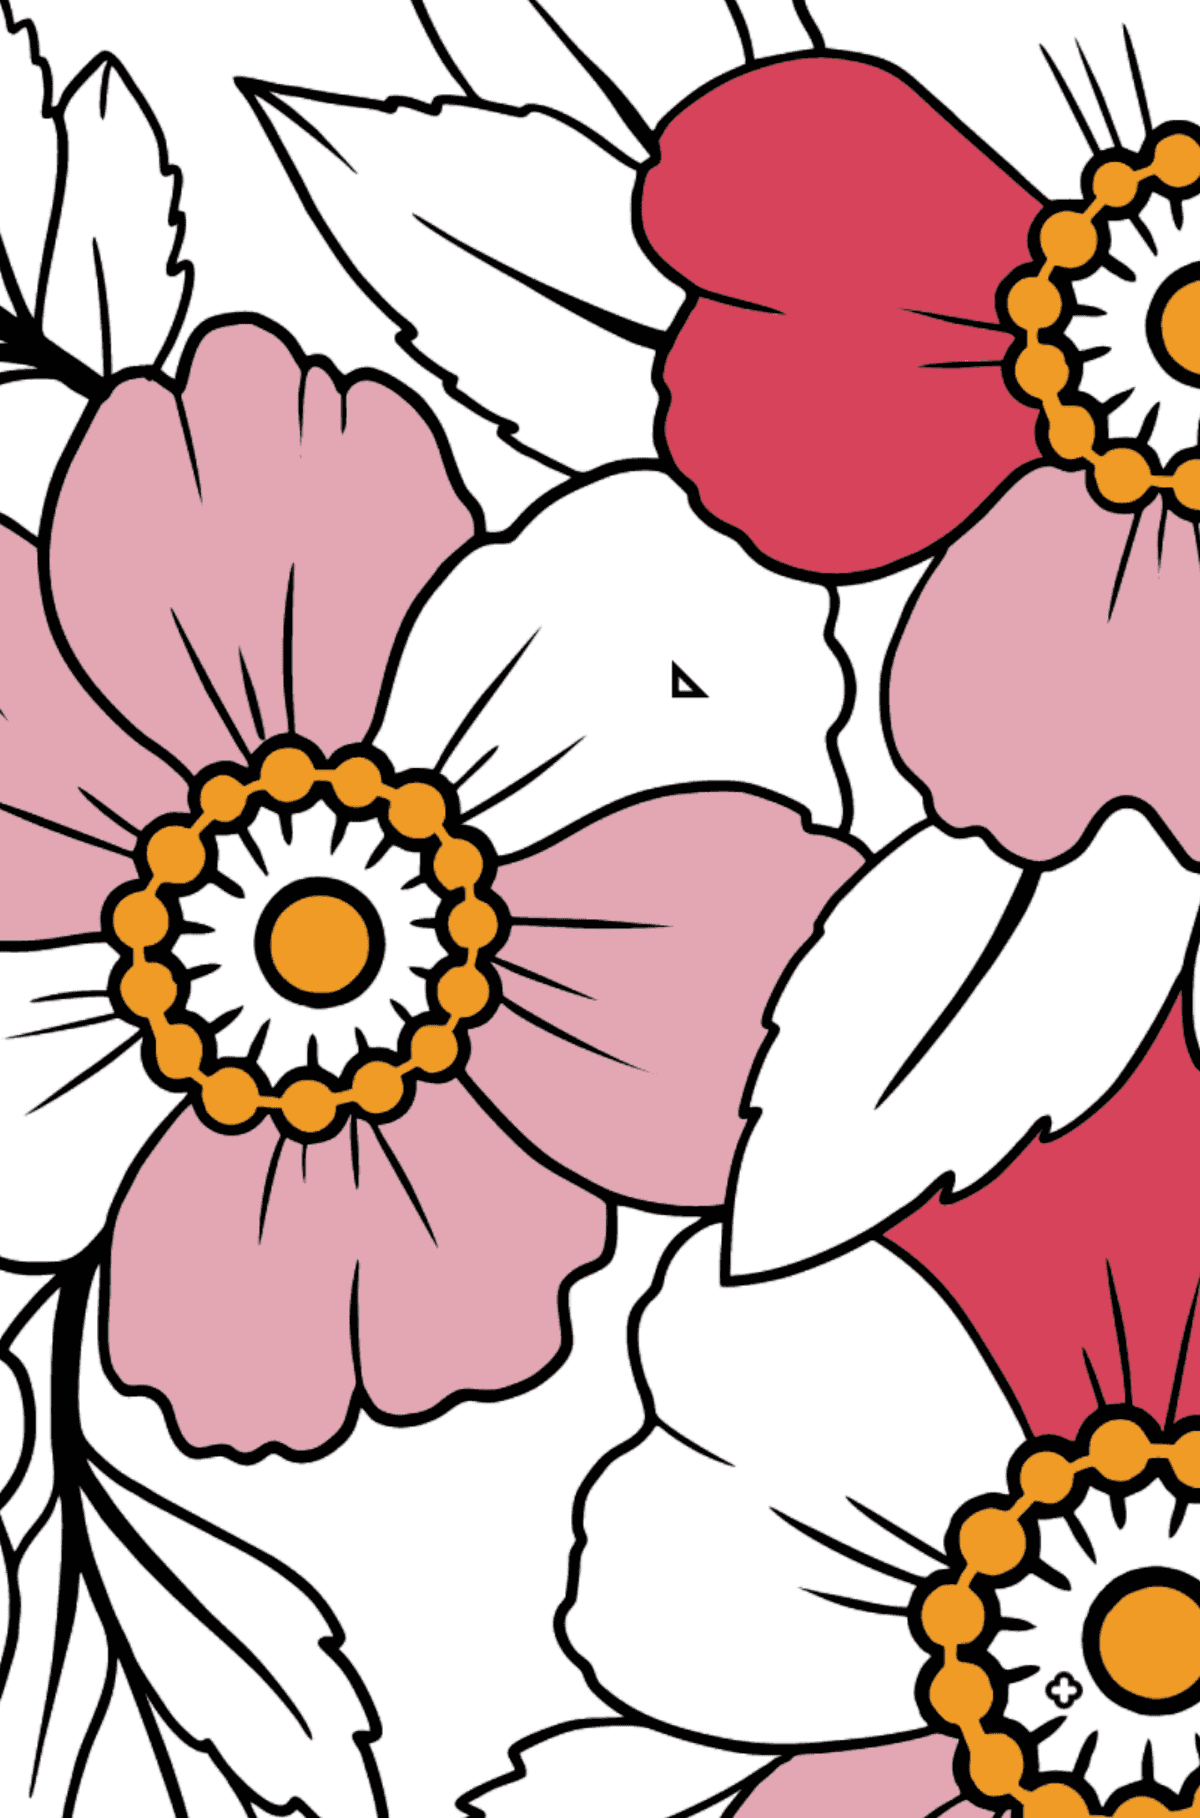 Flower Coloring Page - Japanese Velvet Anemone - Coloring by Geometric Shapes for Kids